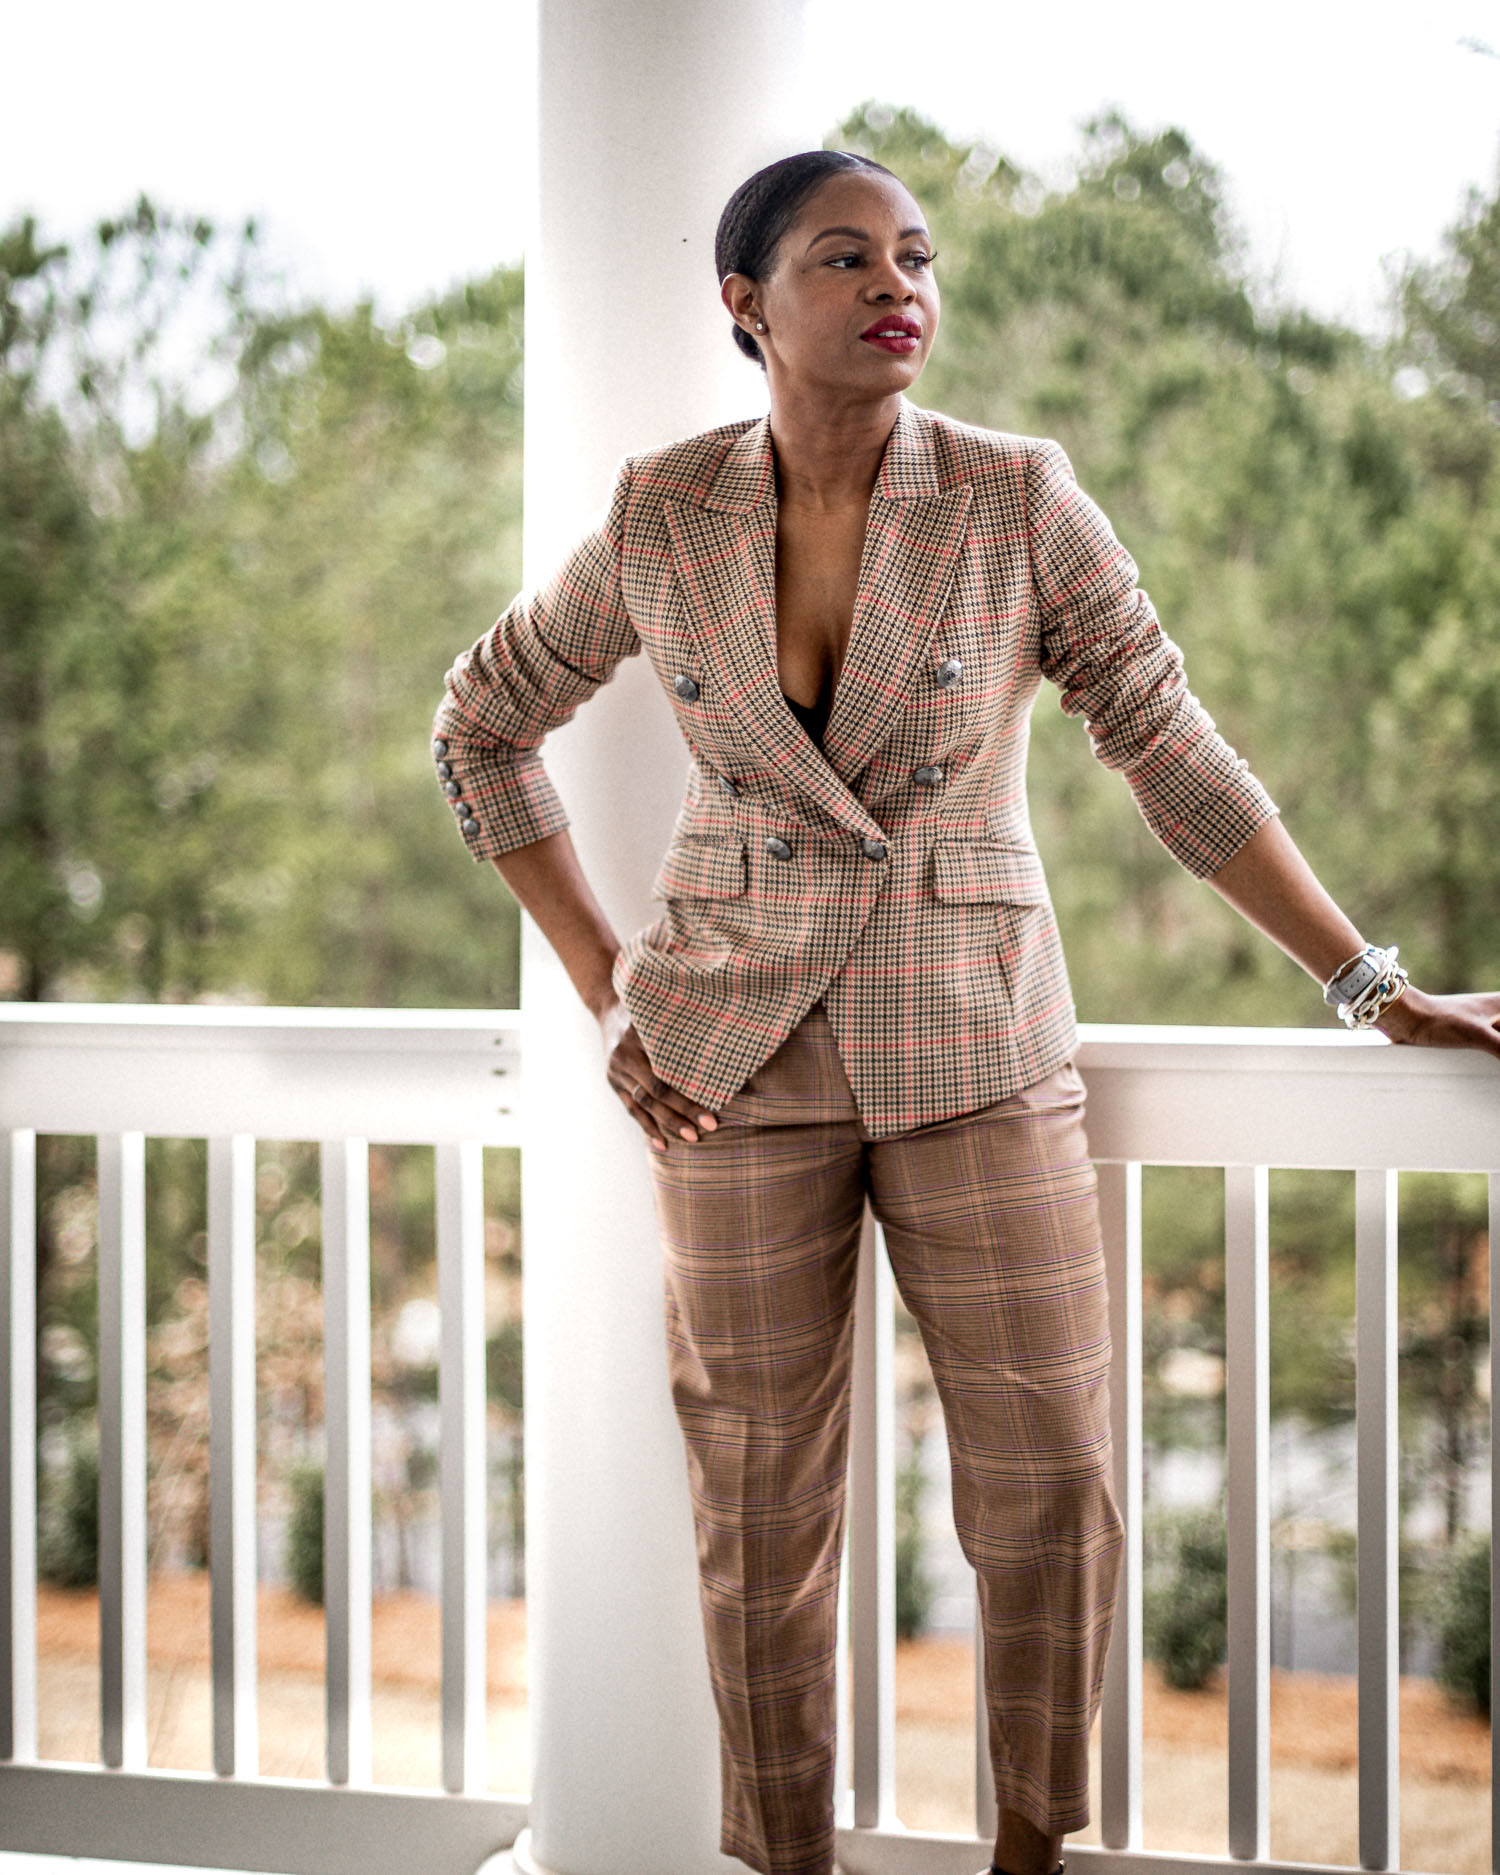 atlanta blogger monica awe-etuk wearing banana republic plaid suit for spring, what to wear to work, what to wear to work, how to look feminine and powerful to work, how to dress like a boss, what to wear to wear, spring work outfits, what to wear to work for spring, best work outfits, plaid suit, double breast plaid suit, banana republic suit, best suits for work, best stores for work wear